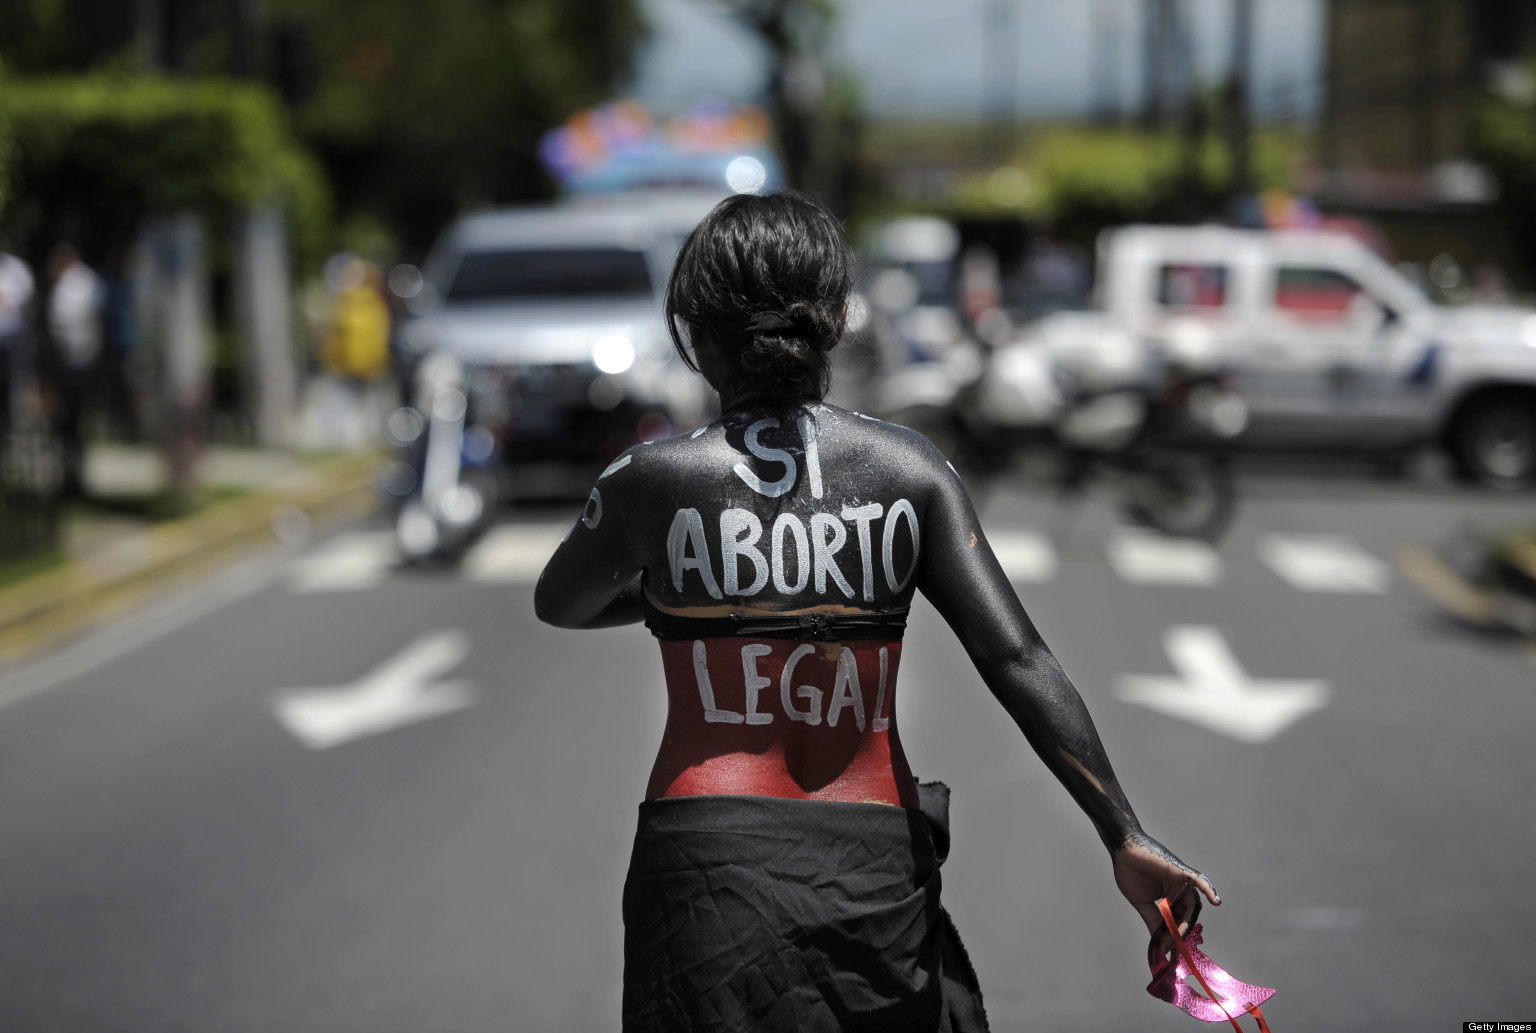 El Salvador Court Considers Permitting Some Abortion